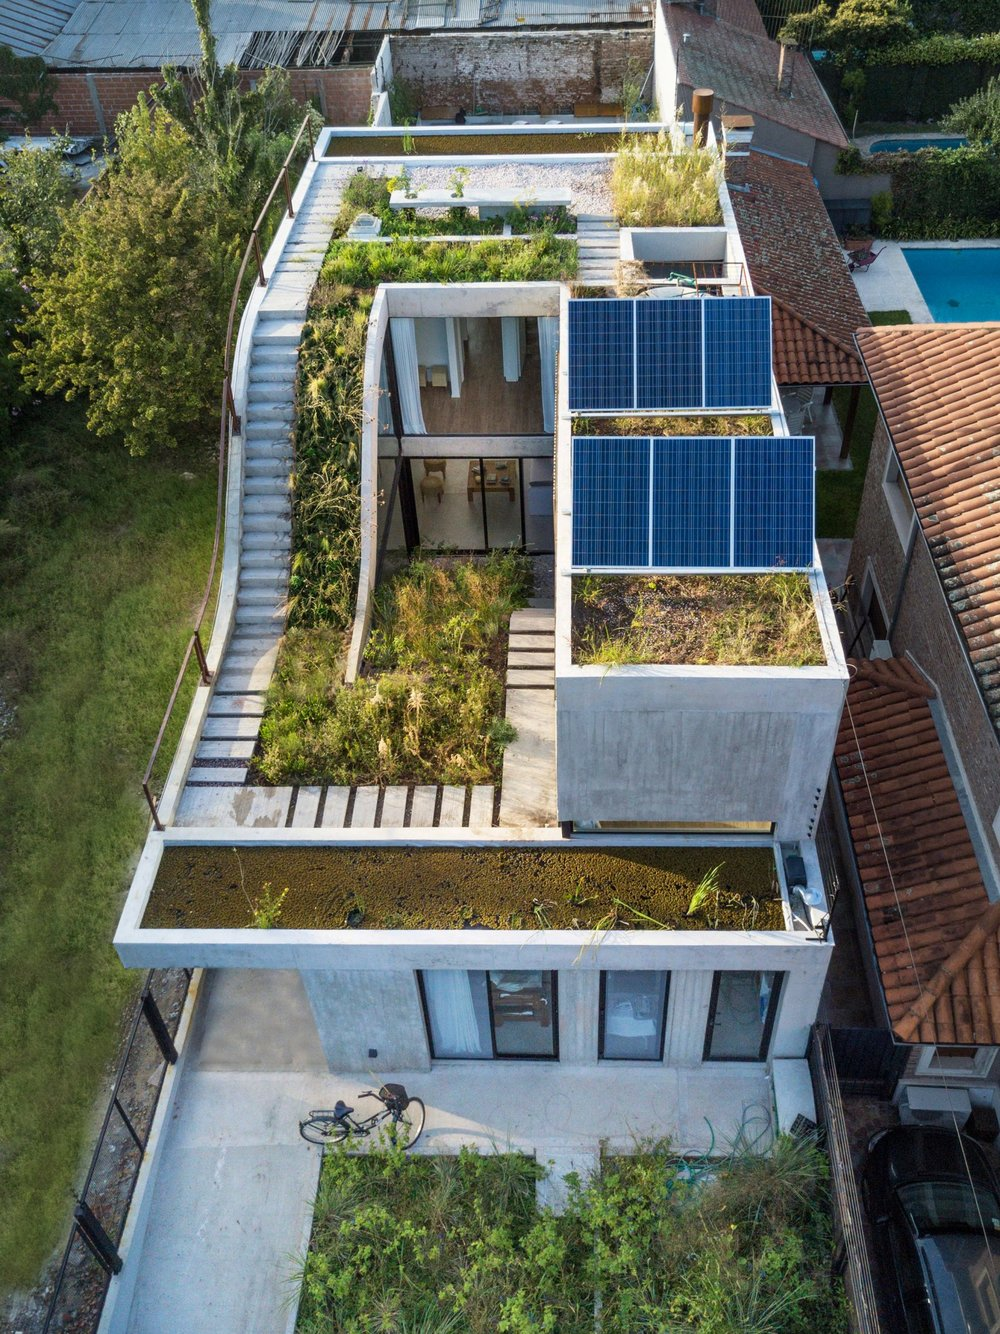 house-memo-bam-arquitectura-architecture-residential-houses-buenos-aires-argentina-_dezeen_2364_col_0-1704x2273.jpg